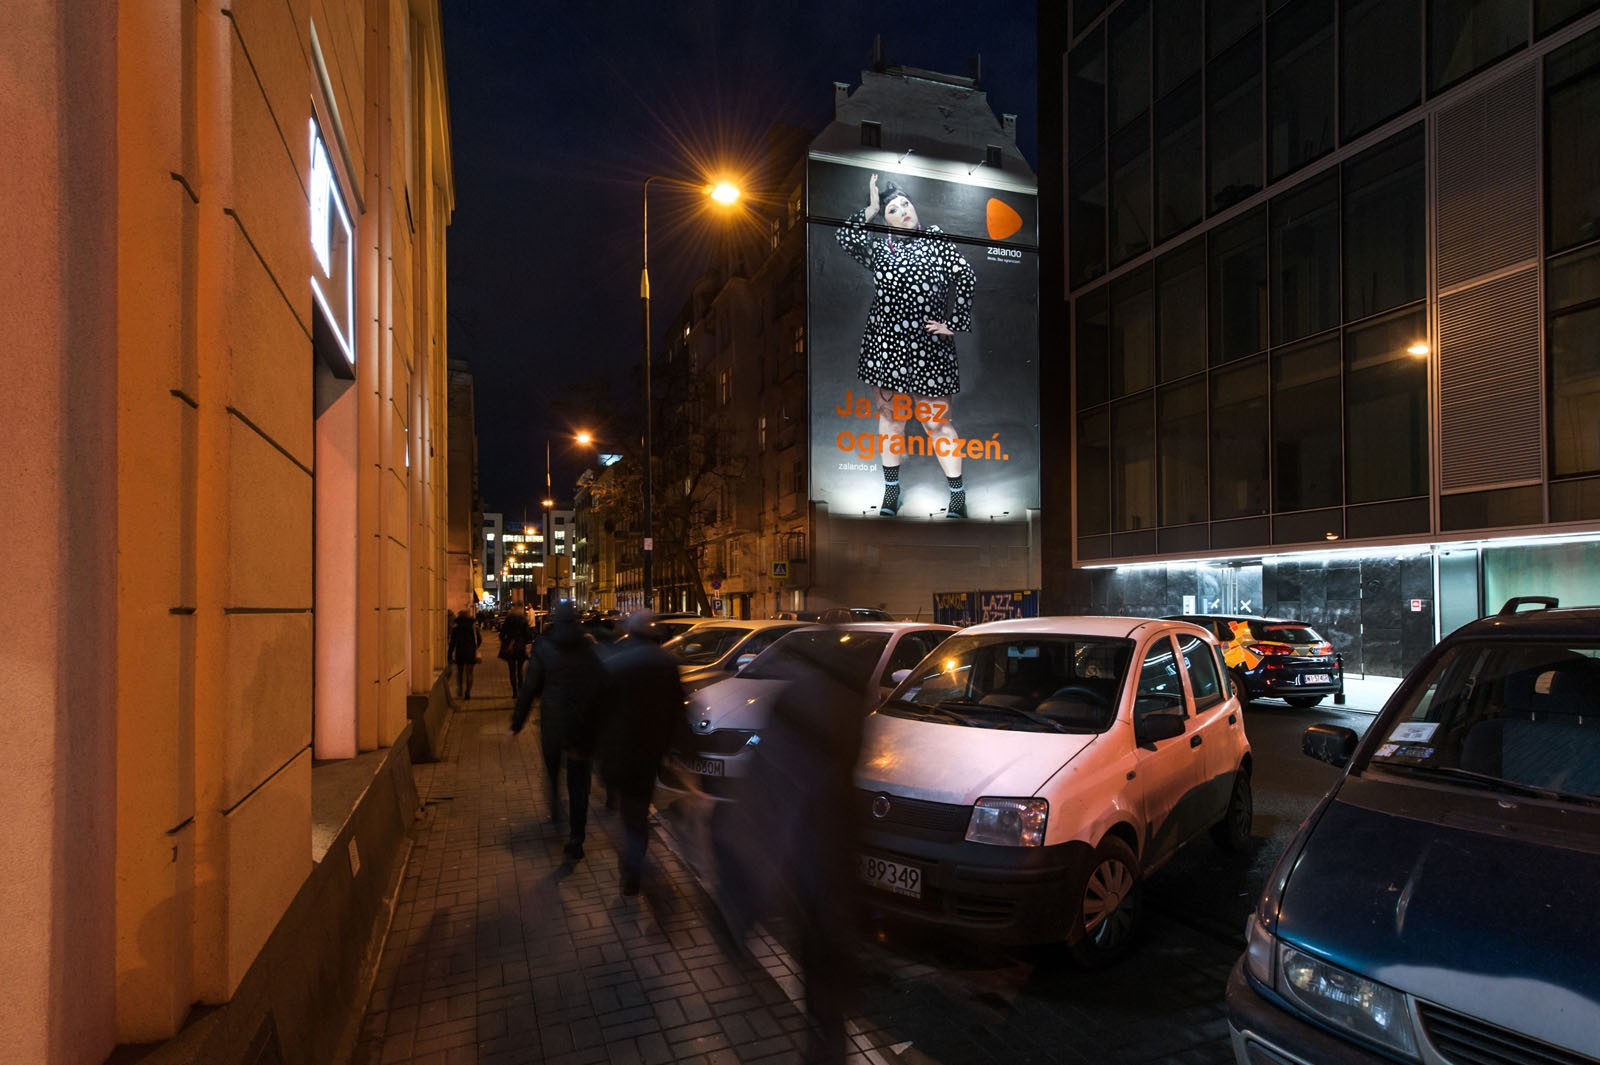 Advertising mural for clothing brand zalando in Warsaw downtown | Ja. Bez ograniczeń | Portfolio